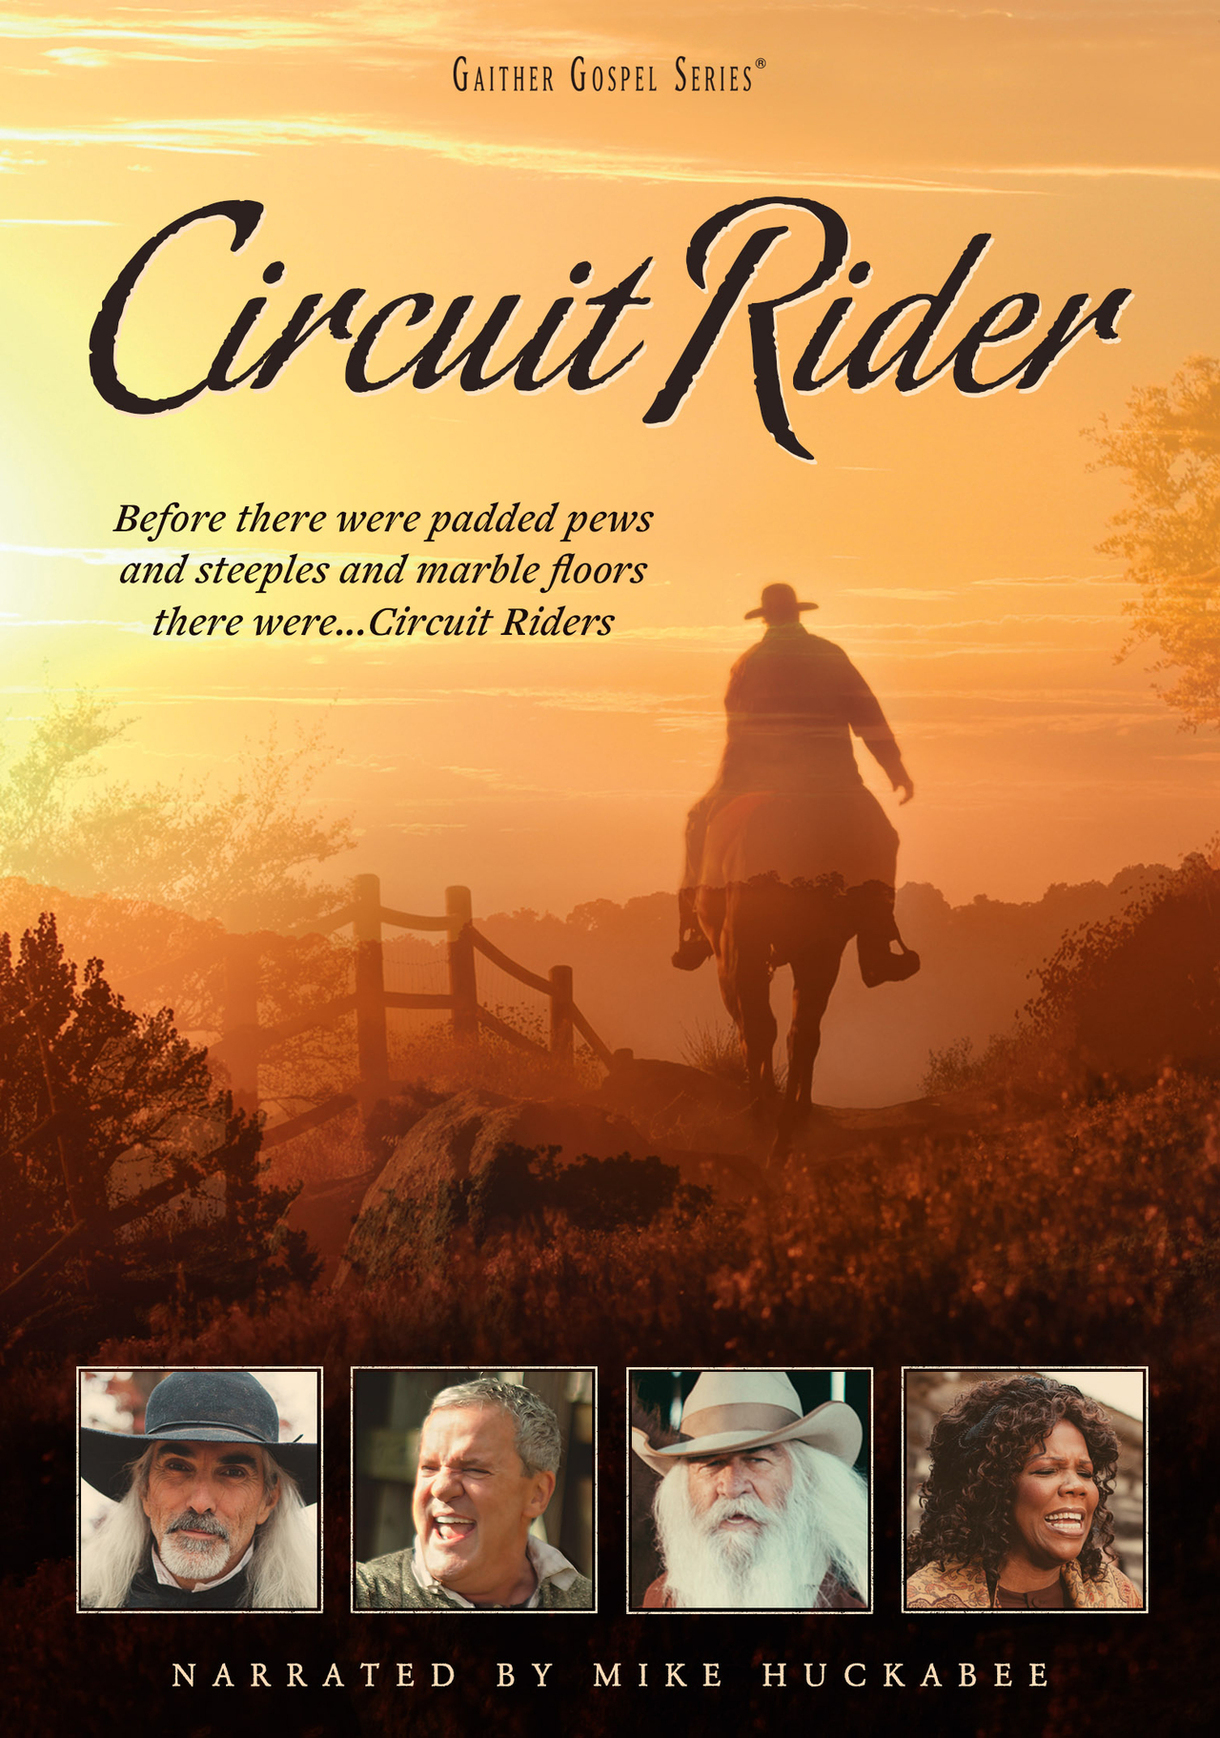 Gaither Music Group Releases All-new Circuit Rider Docu-musical